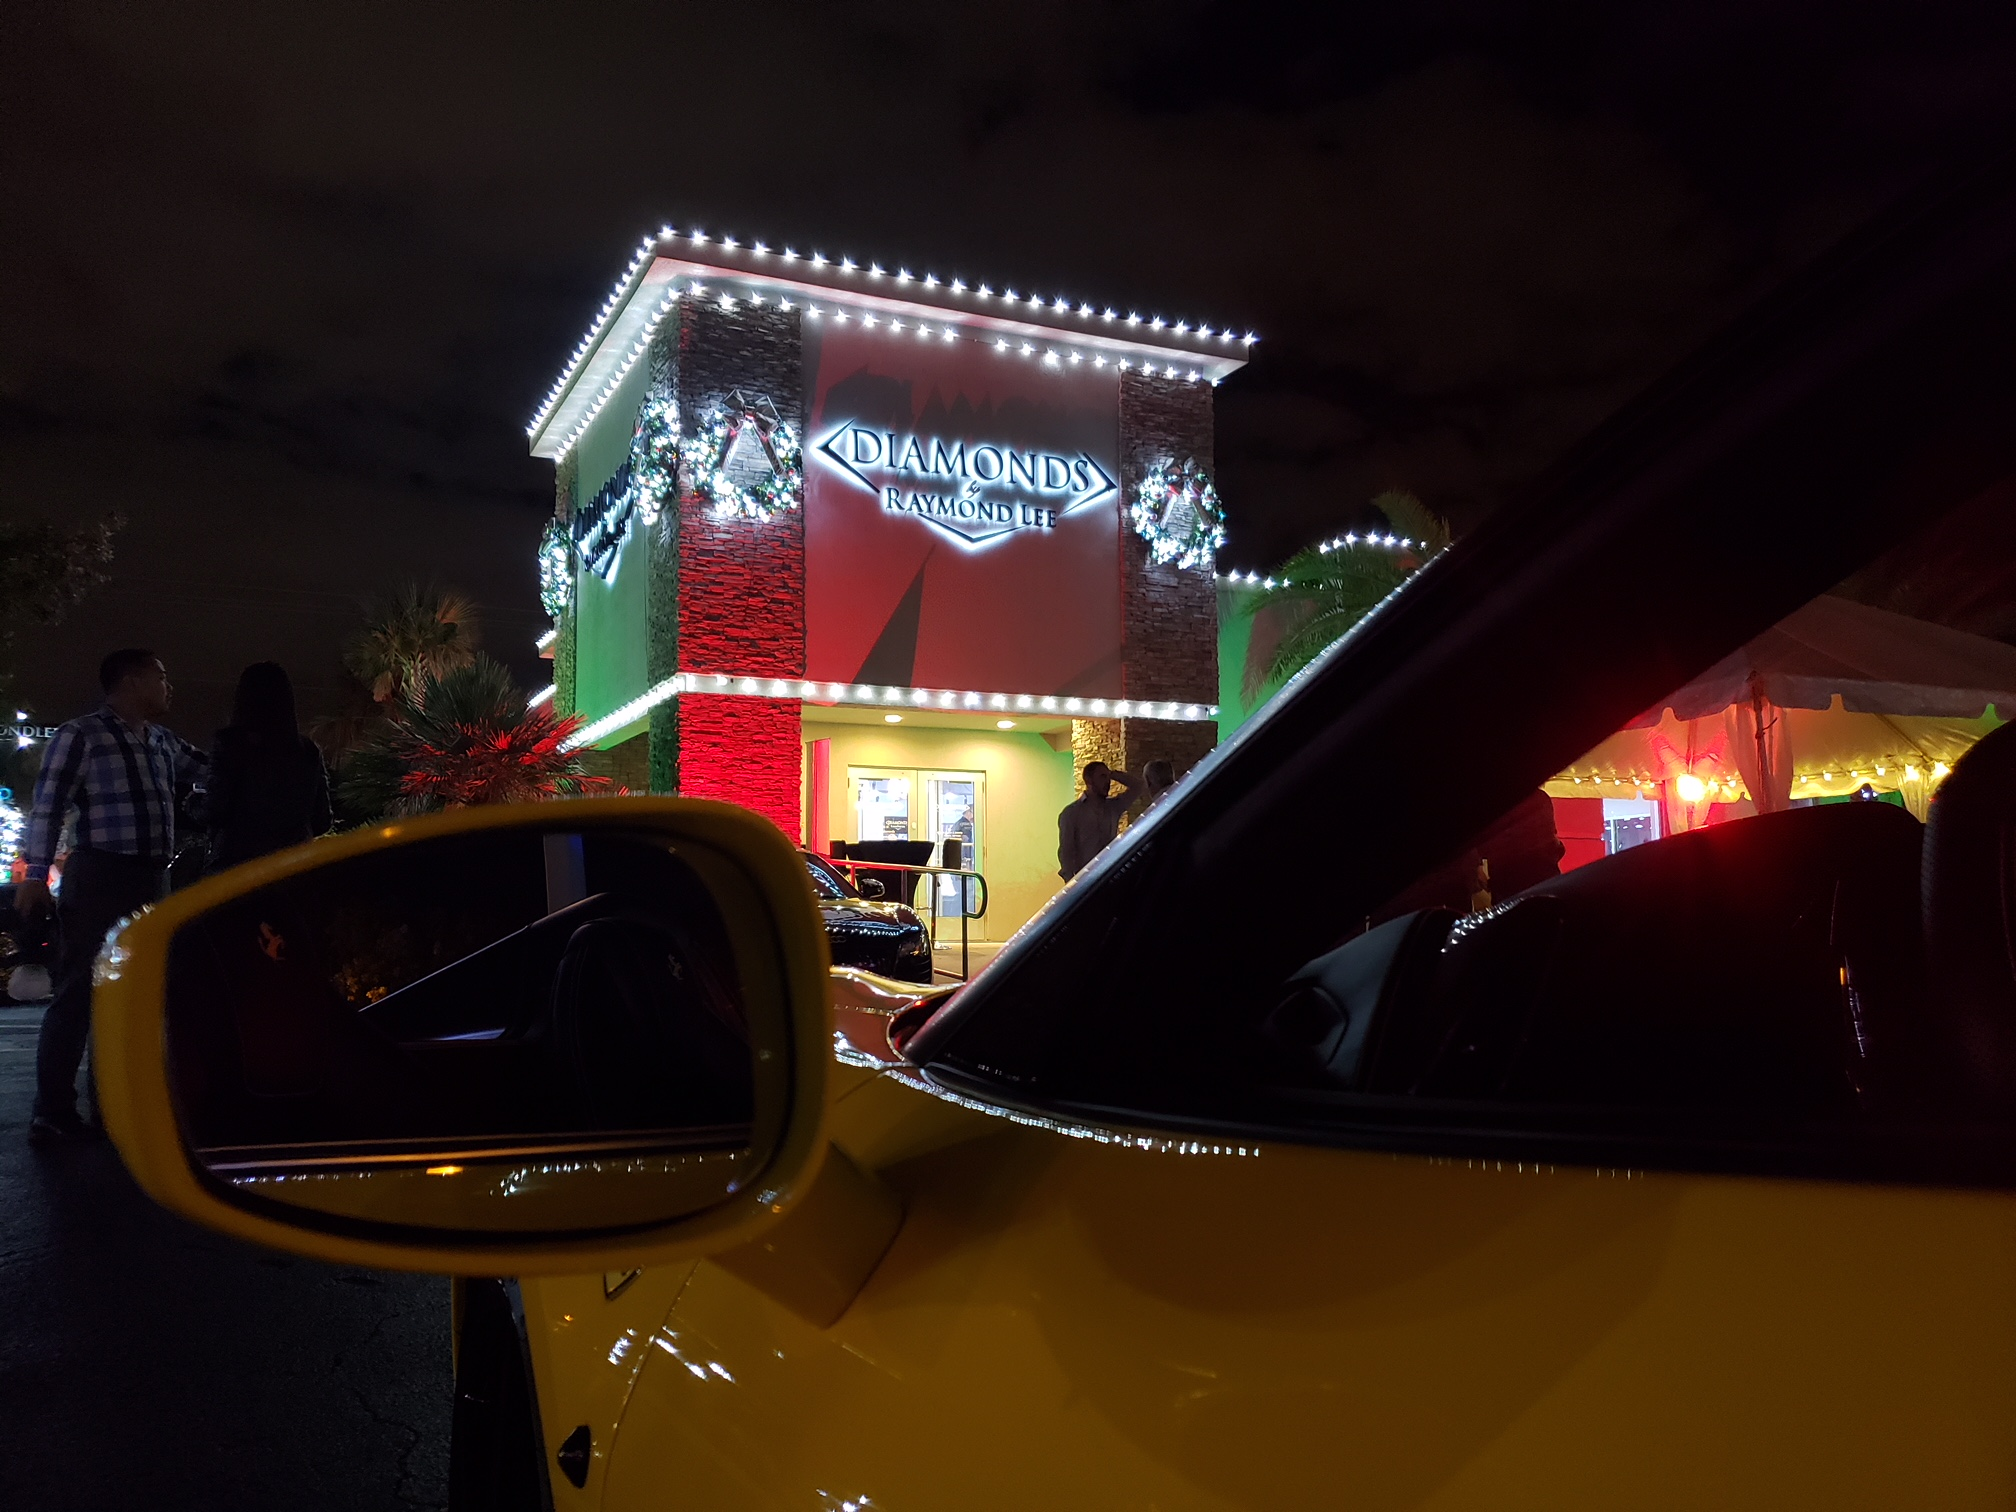 Exotic car society holiday party hosted by diamonds By raymond lee